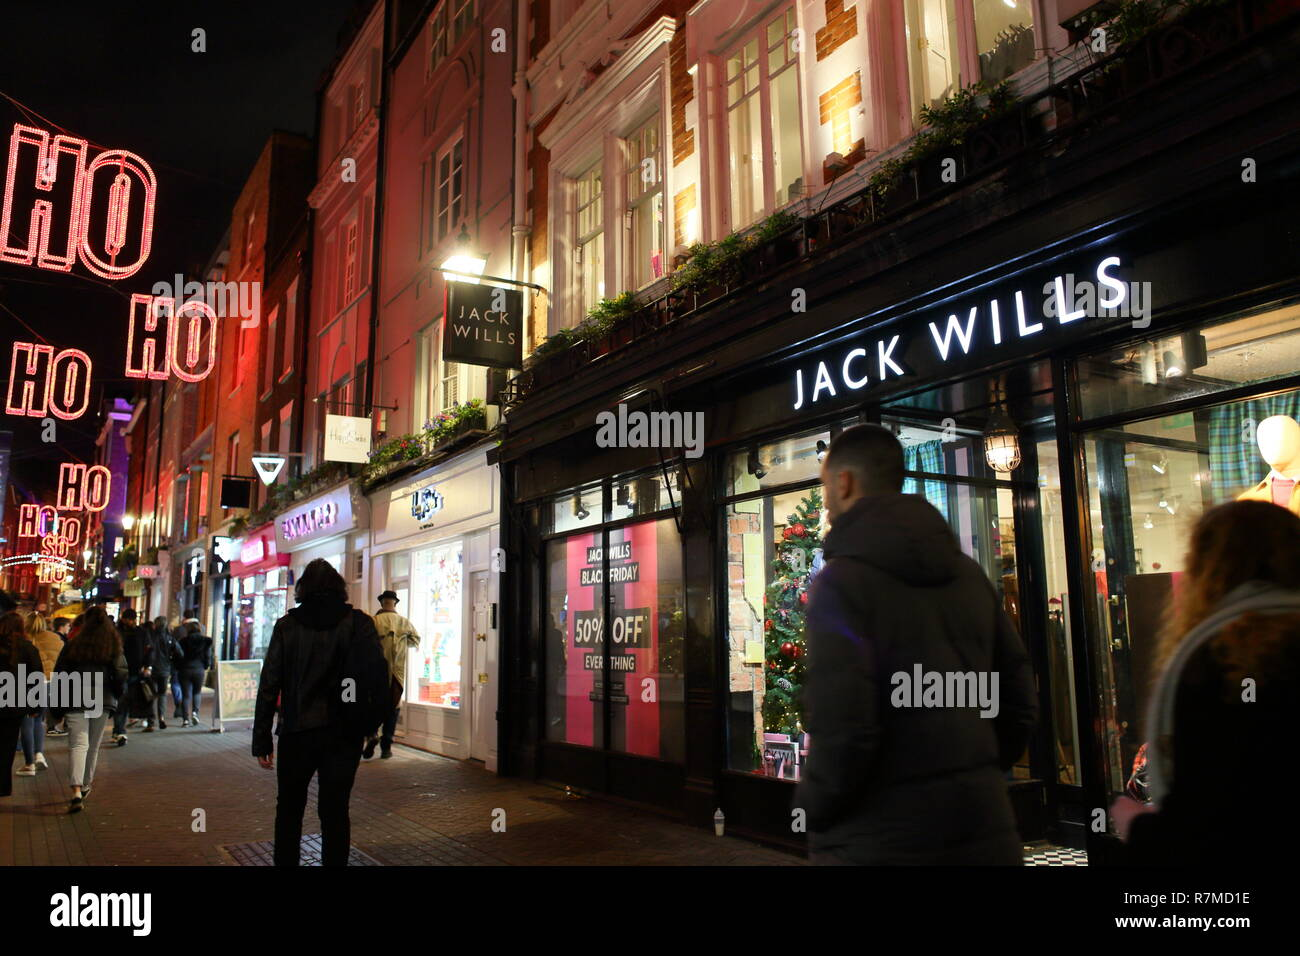 People walking by Jack Wills store in Carnaby Street area, Soho, London, England, UK - Stock Image